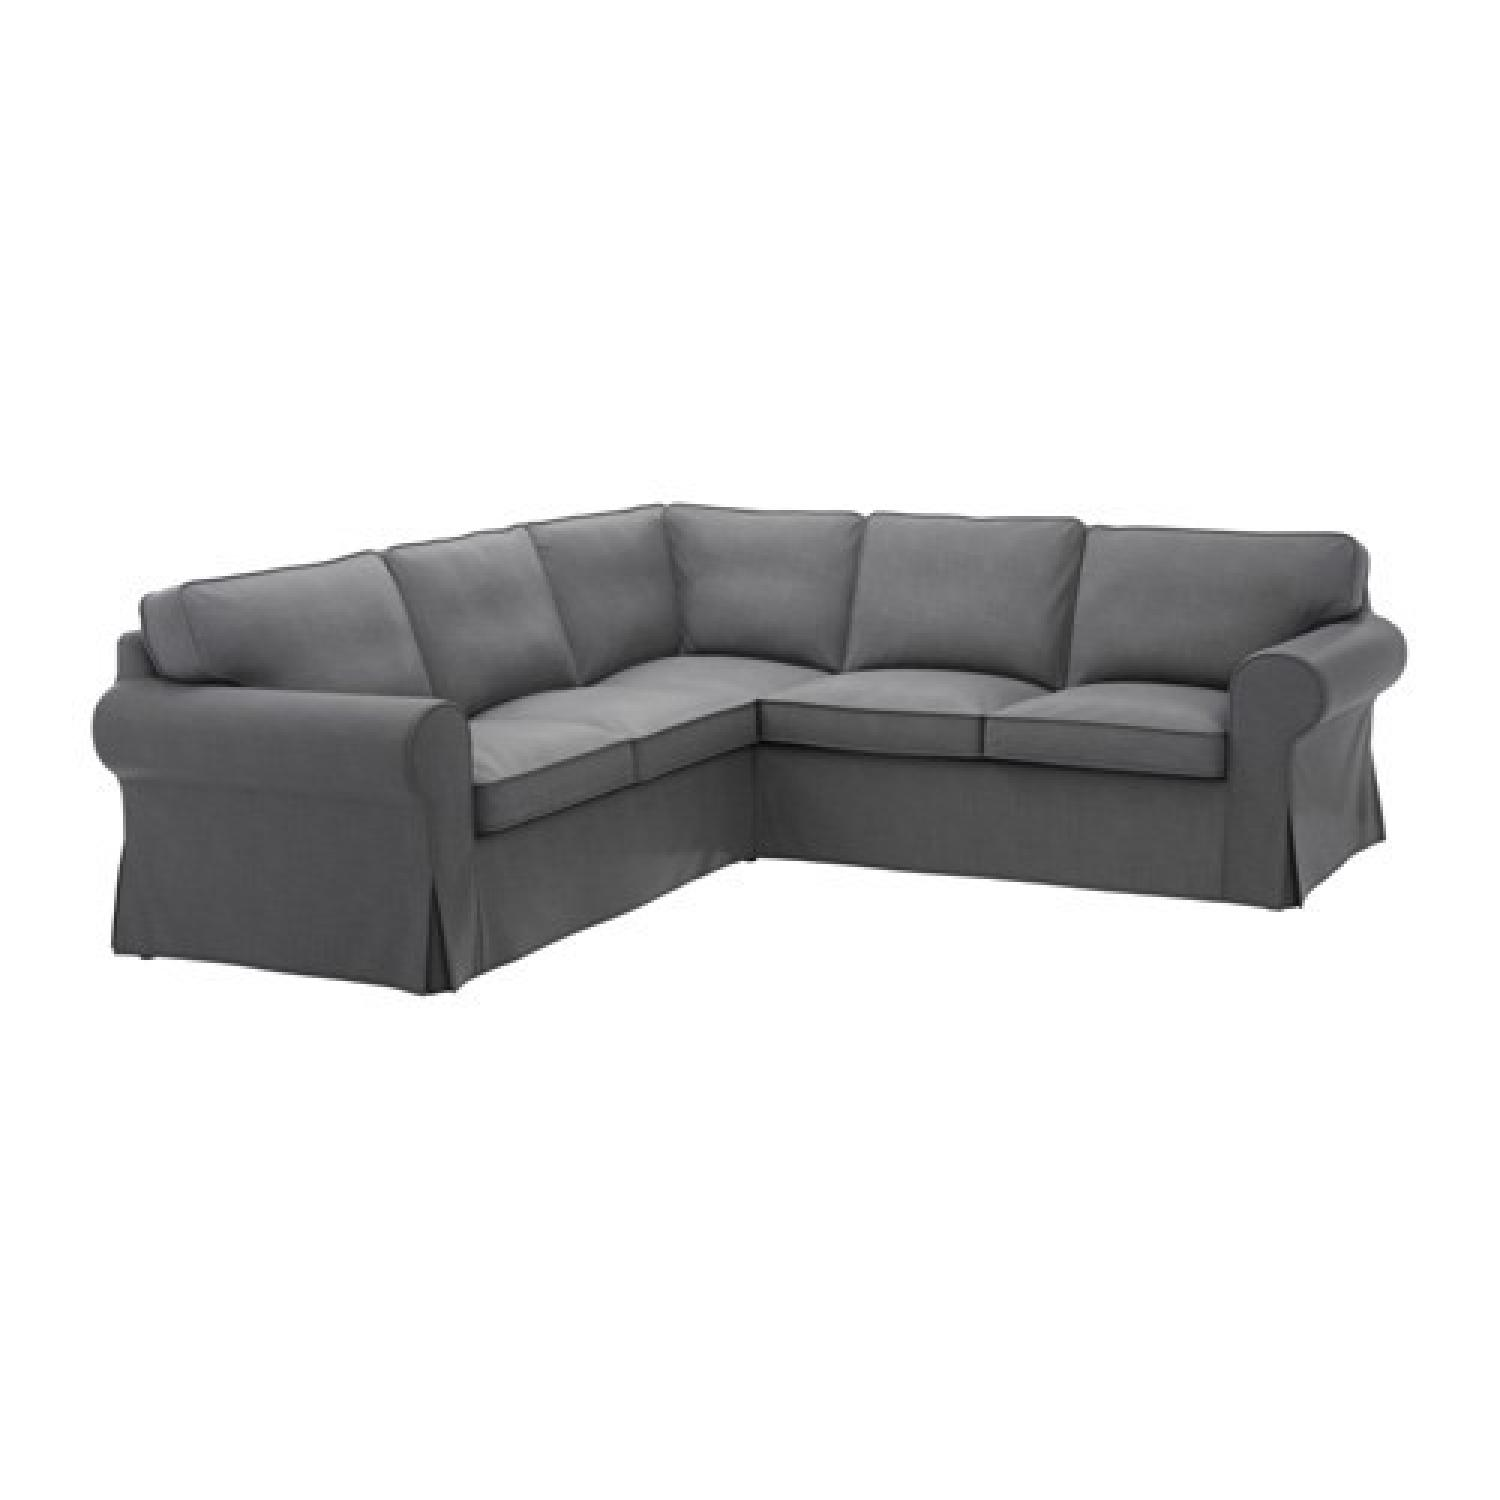 Ikea Dark Grey Sectional Sofa - image-1